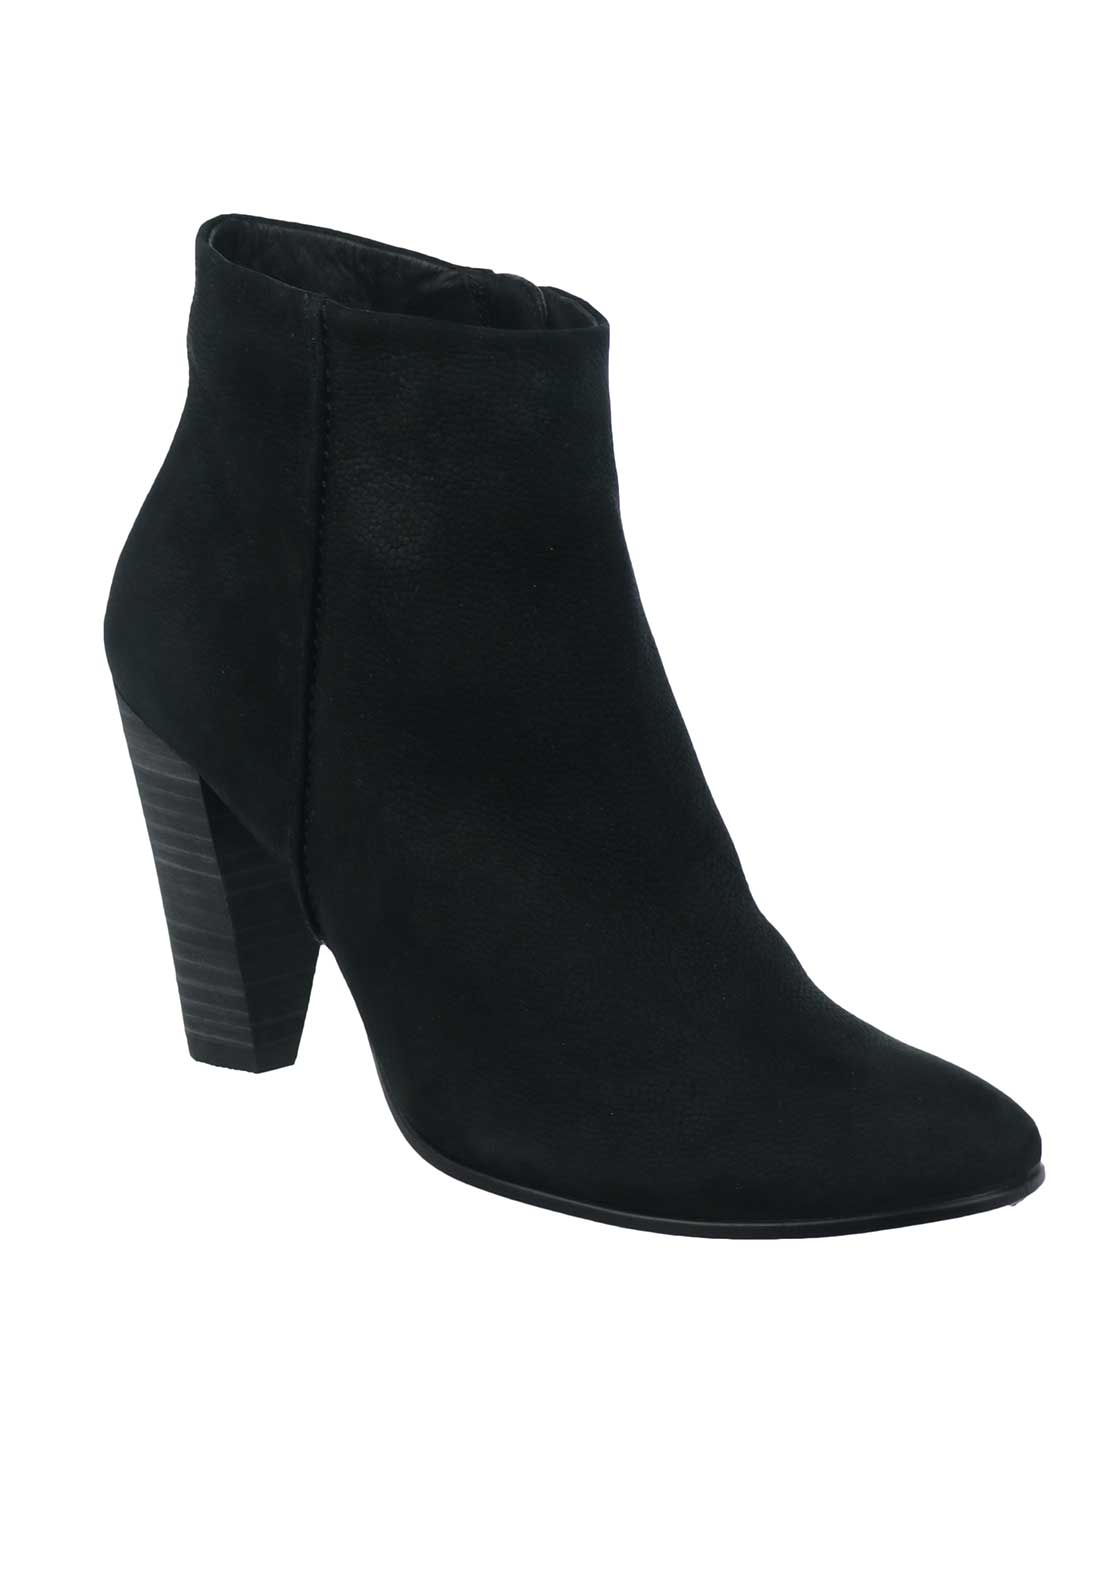 Ecco Womens Shape 75 Ankle Boot, Black